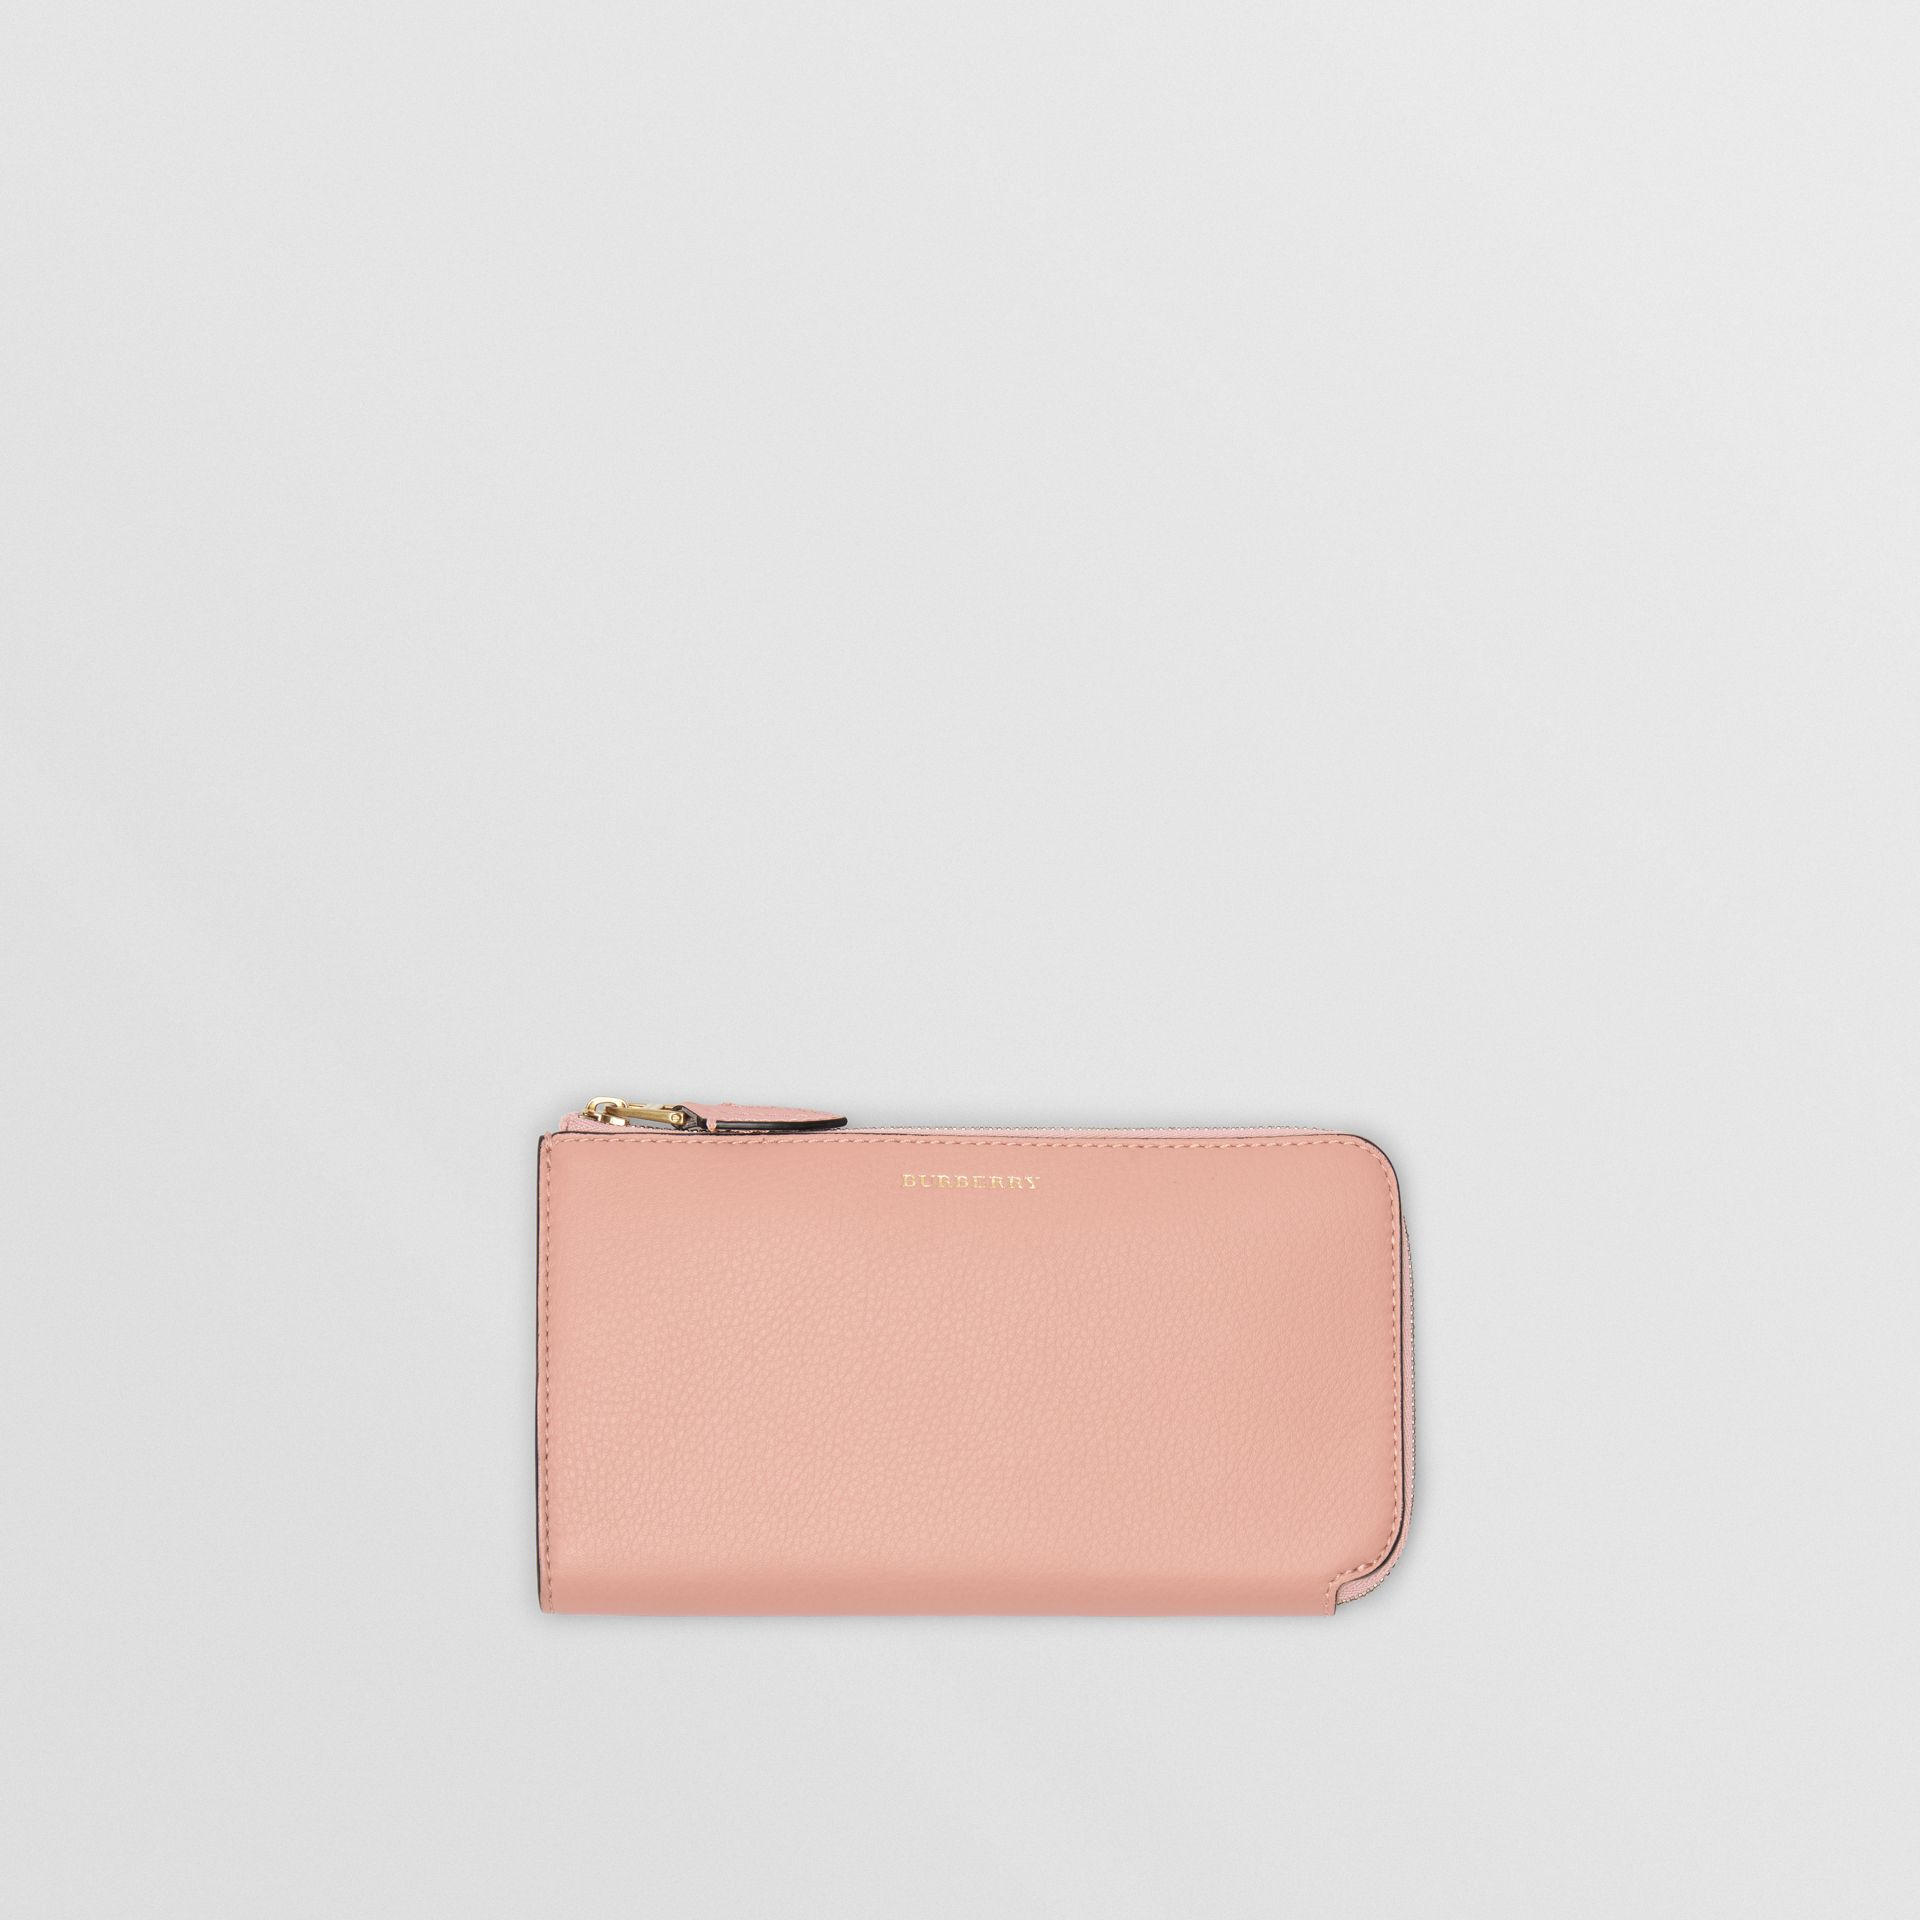 Two-tone Leather Ziparound Wallet and Coin Case in Ash Rose - Women | Burberry Hong Kong S.A.R - gallery image 0